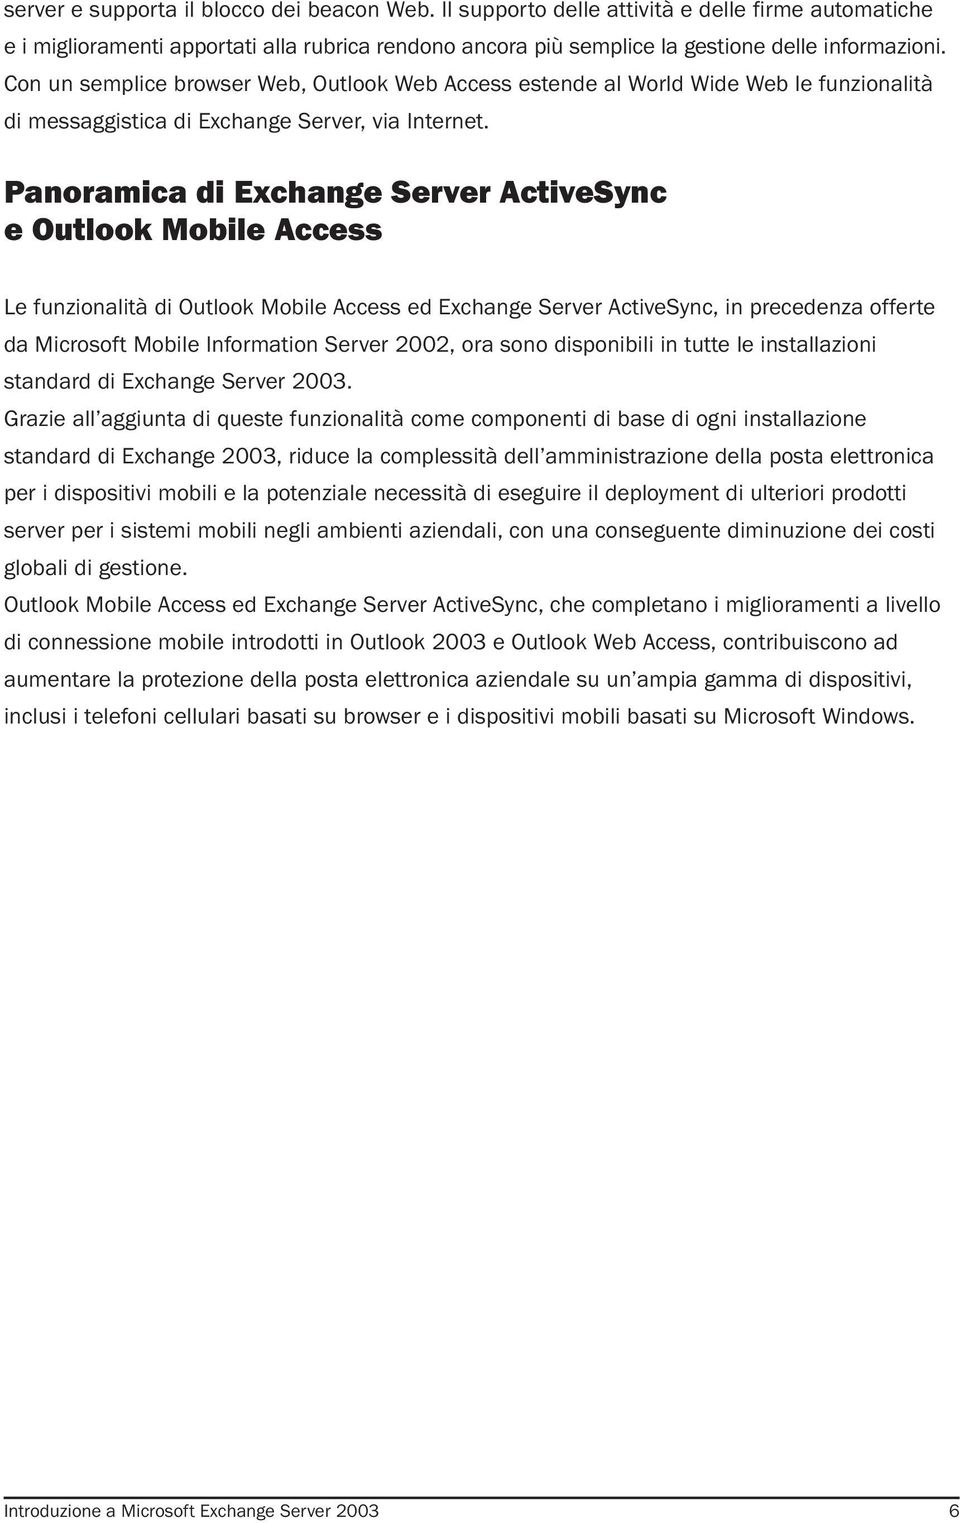 Panoramica di Exchange Server ActiveSync e Outlook Mobile Access Le funzionalità di Outlook Mobile Access ed Exchange Server ActiveSync, in precedenza offerte da Microsoft Mobile Information Server